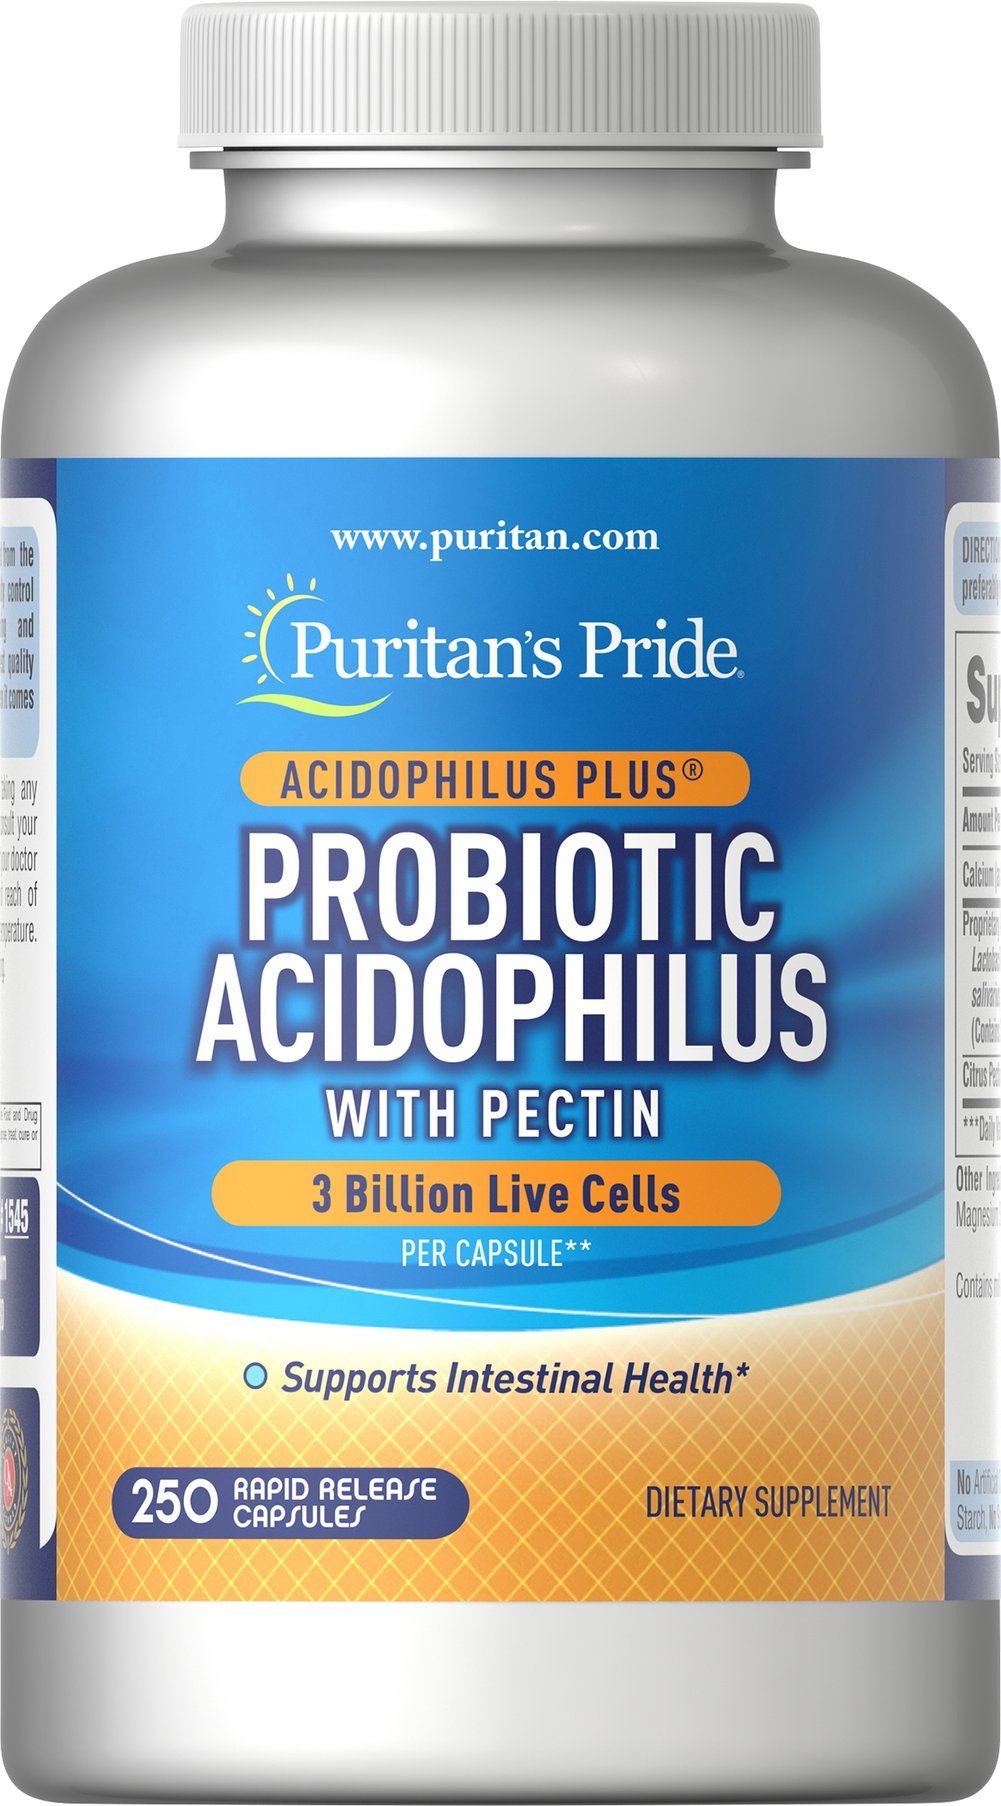 Probiotic Acidophilus with Pectin <p><strong></strong></p>This product supports intestinal health to help provide a favorable environment for the absorption of nutrients, and is guaranteed to provide three billion live cells per capsule at the time of manufacture.** It includes Acidophilus to and nutritionally supports a  your digestive tract, encourages intestinal microflora balance, and promotes the healthy functioning of the intestinal system.** One serving de